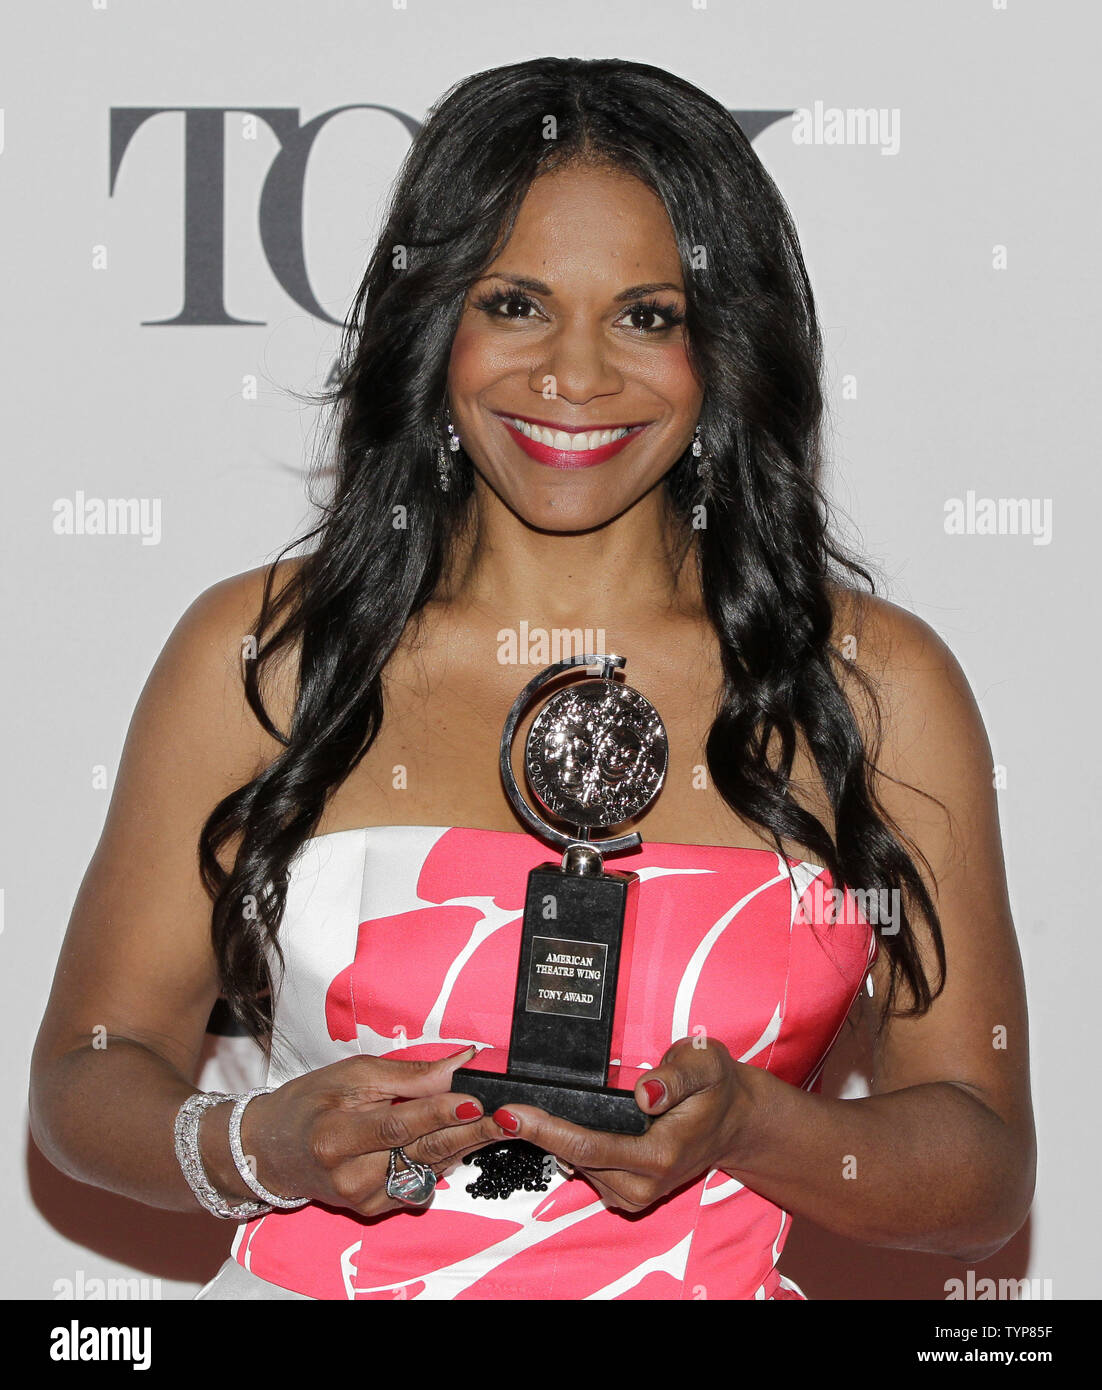 Audra McDonald of ÒLady Day at EmersonÕs Bar & GrillÓ with her Tony Award for Best Performance by a Leading Actress in a Play in the press room during 68th Tony Awards at Radio City Music Hall in New York City on June 8, 2014. The annual awards, which are presented by the American Theatre Wing, recognizes the achievements of Broadway theater.     UPI/John Angelillo. - Stock Image